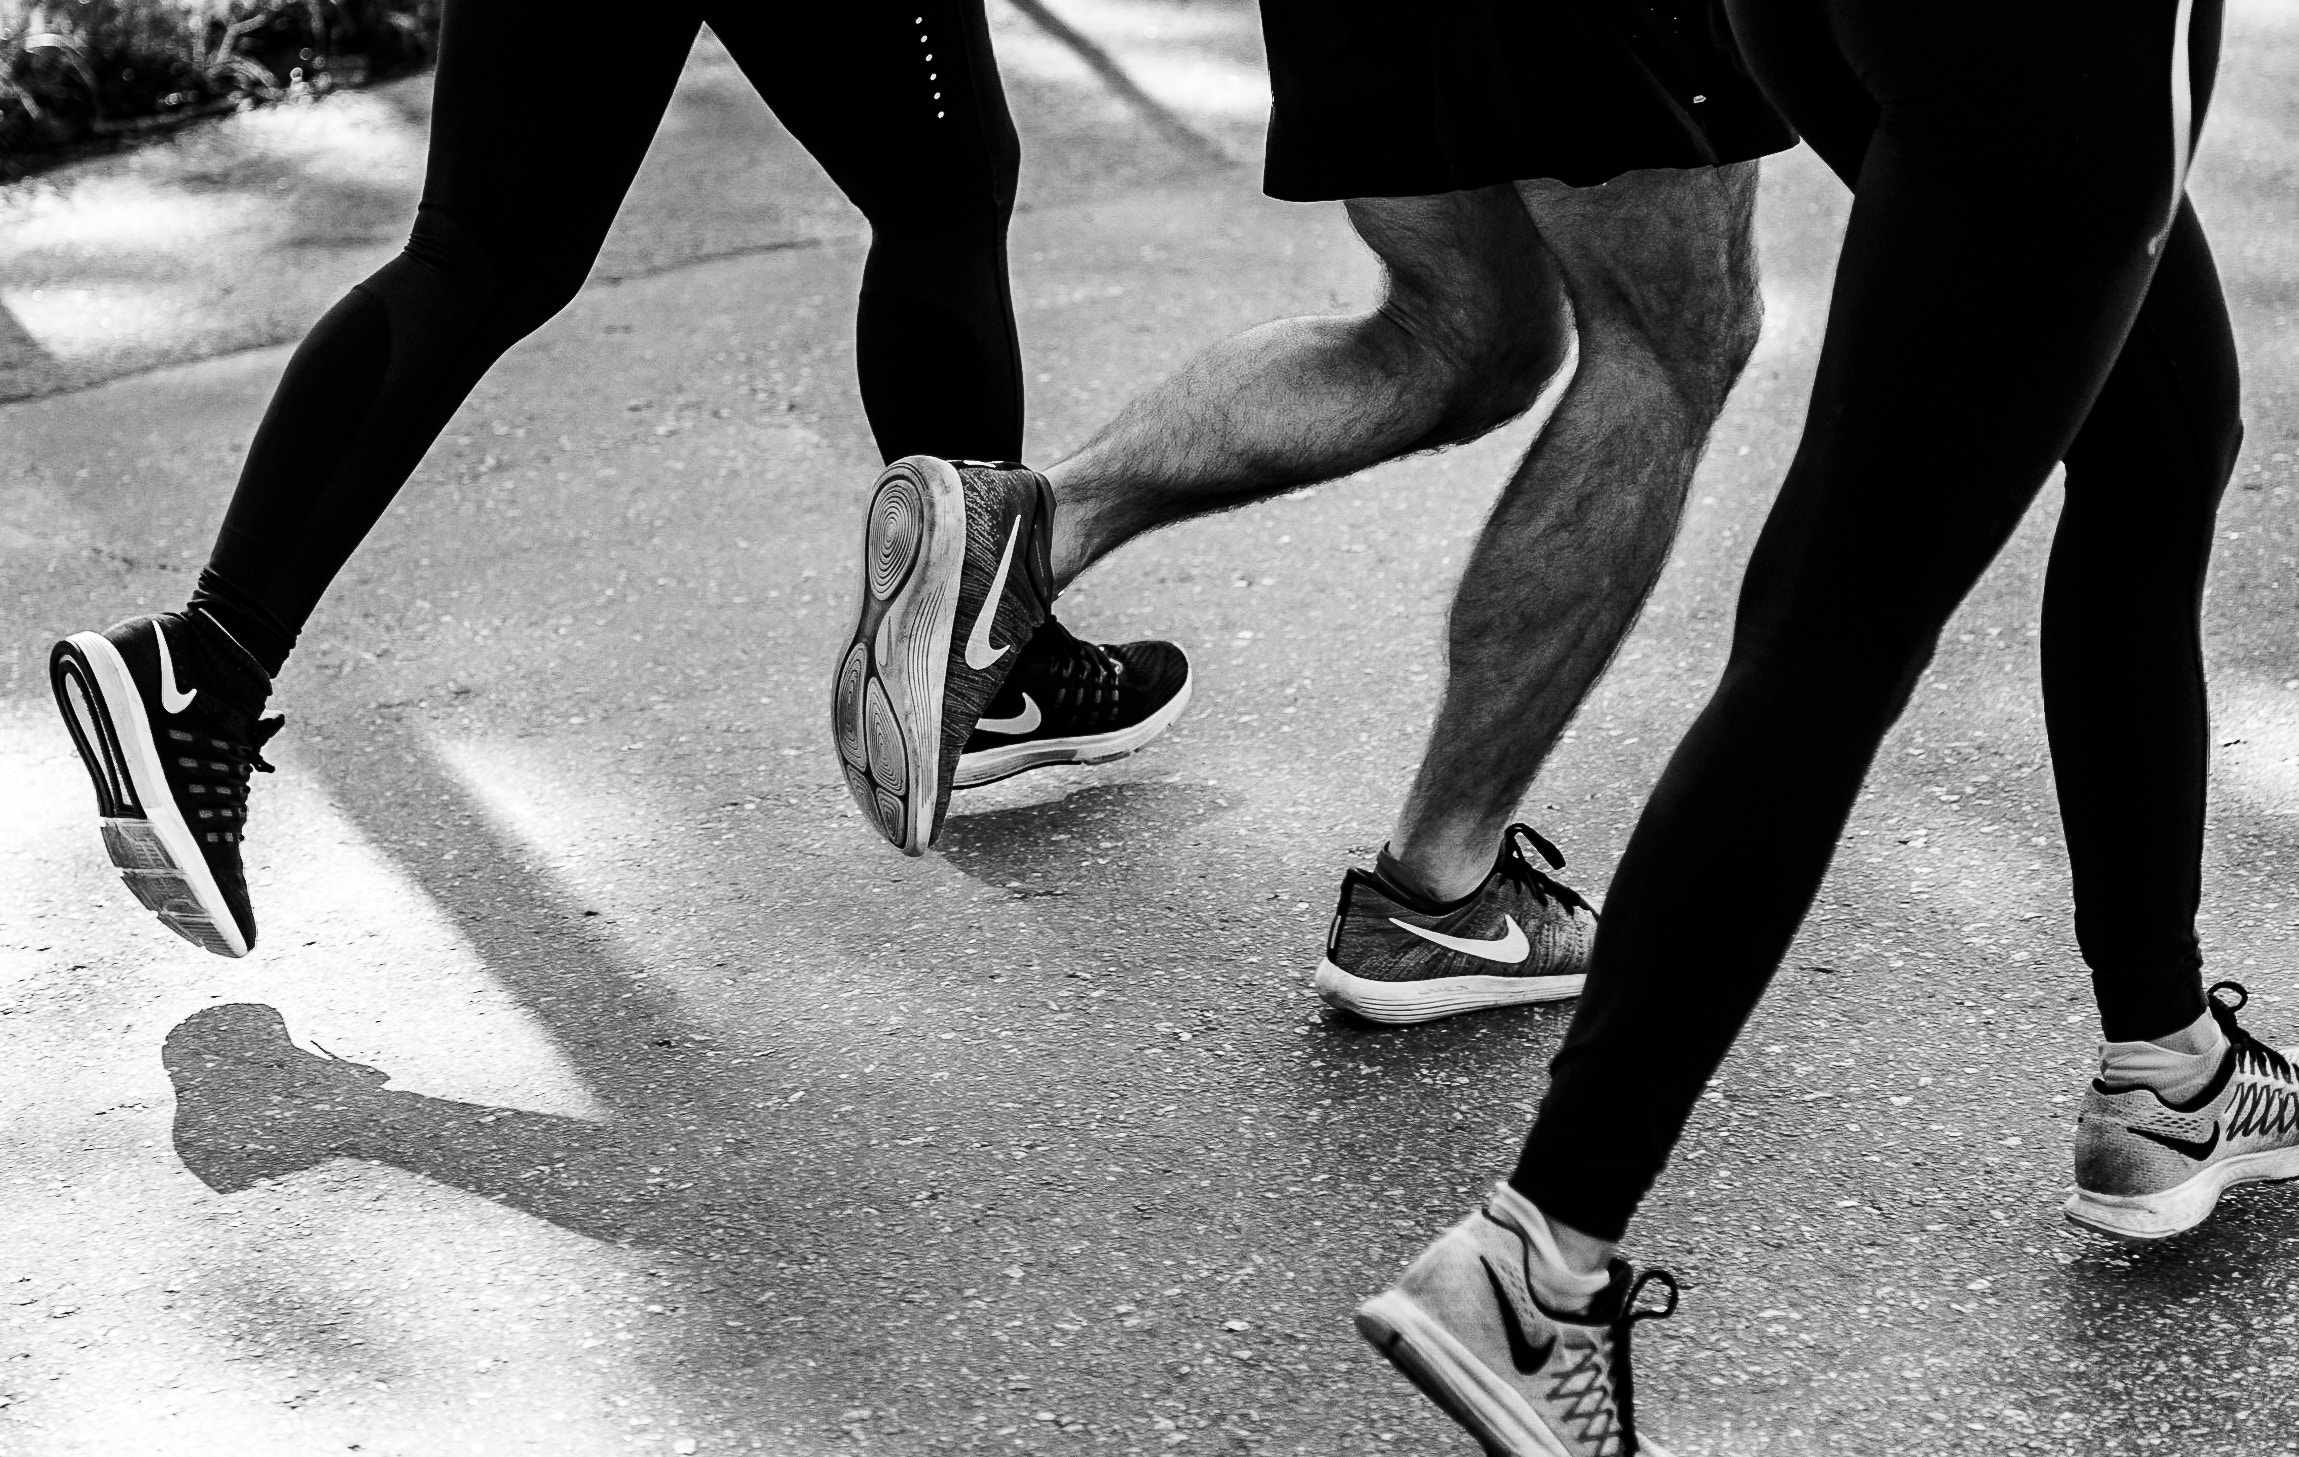 legs and feet of three runners on sidewalk